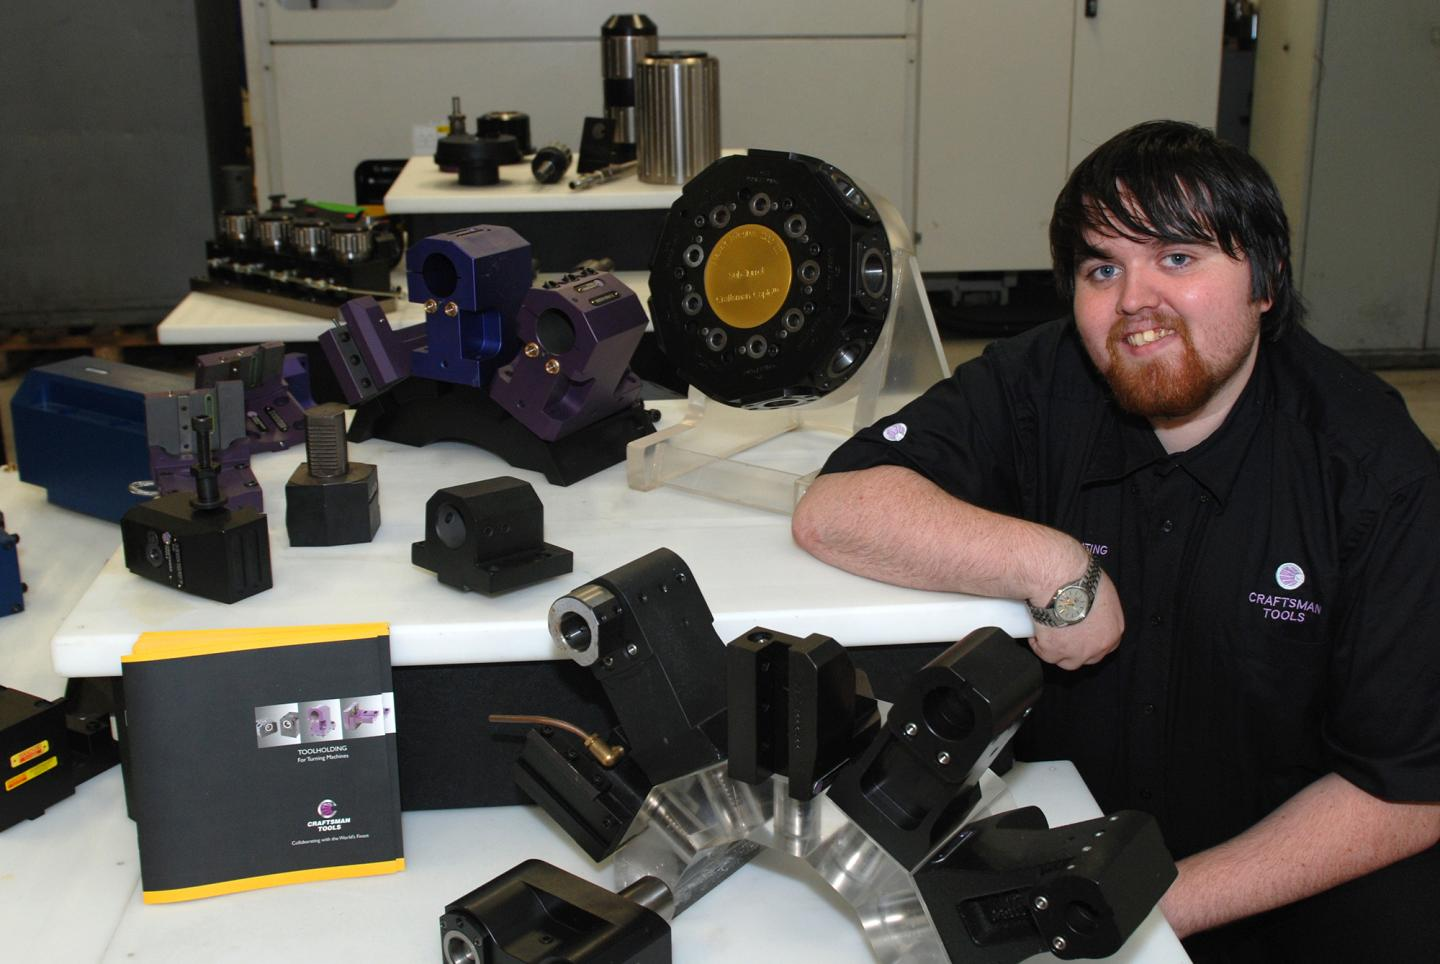 Otley Engineering Firm Looks to Quadruple Turnover in Five Years through Government's £100K Grant